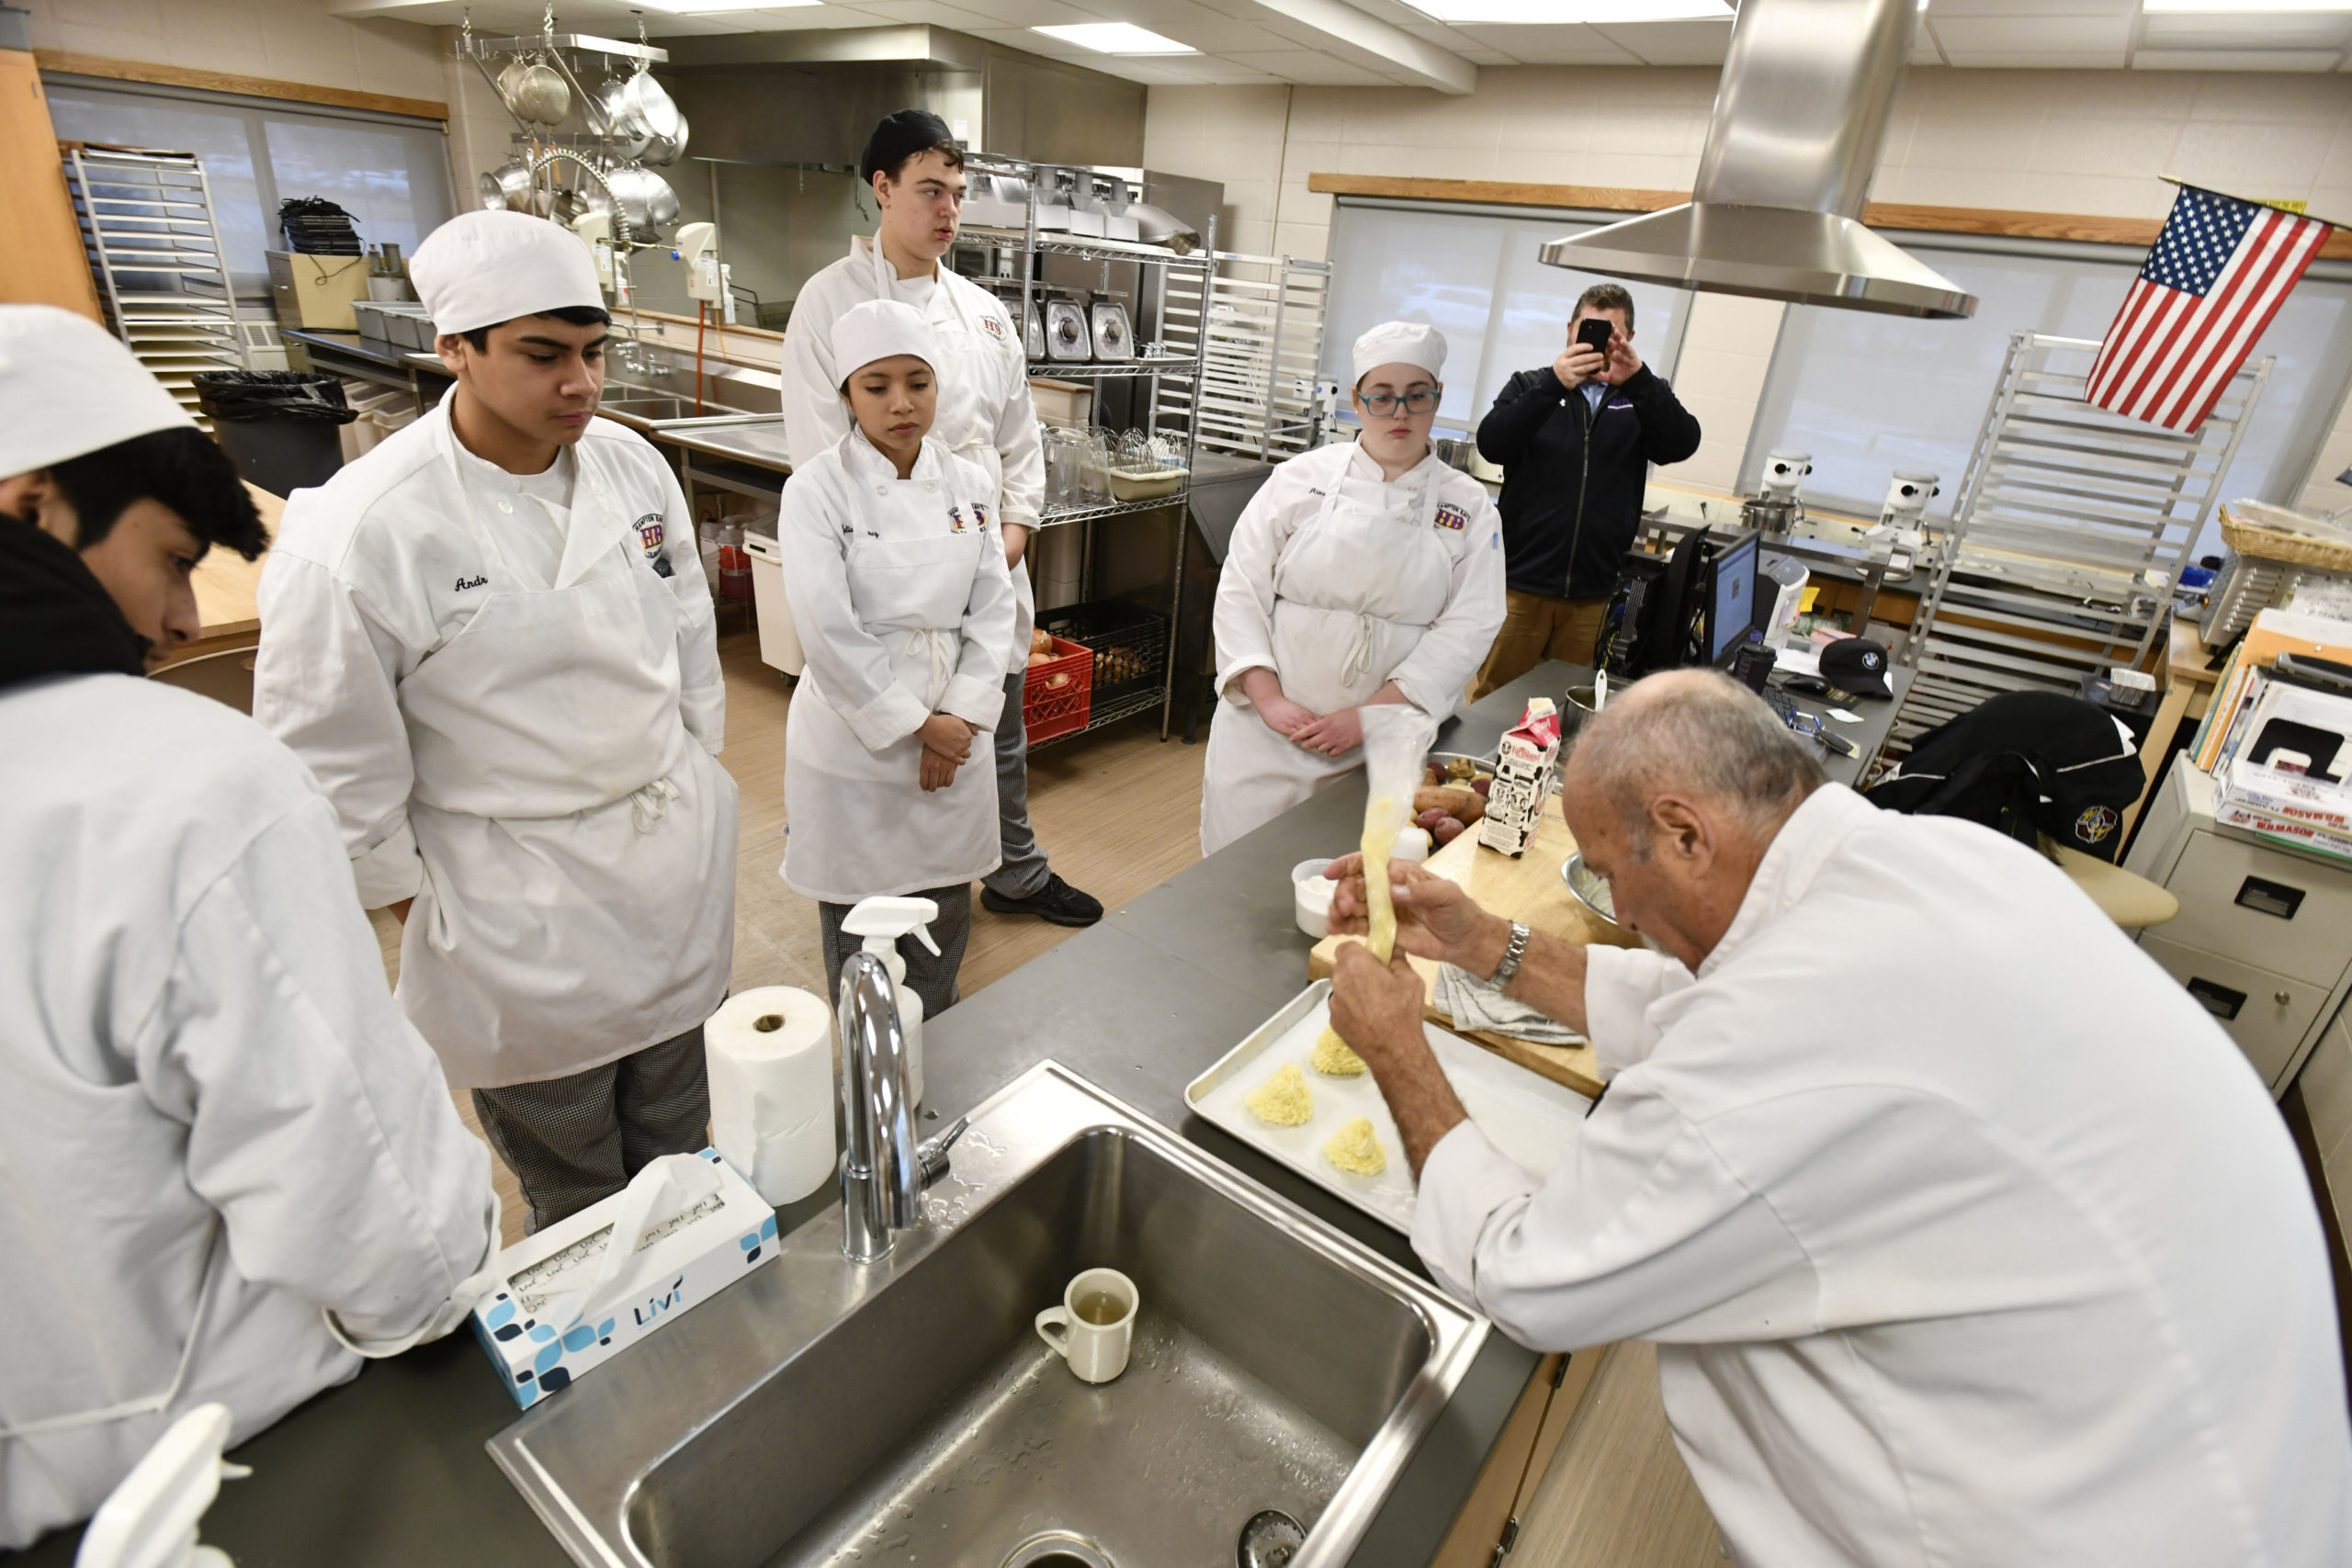 Chef Larry Weiss demonstrates the assignment during the culinary class at Hampton Bays High School on Thursday, February 6. DANA SHAW